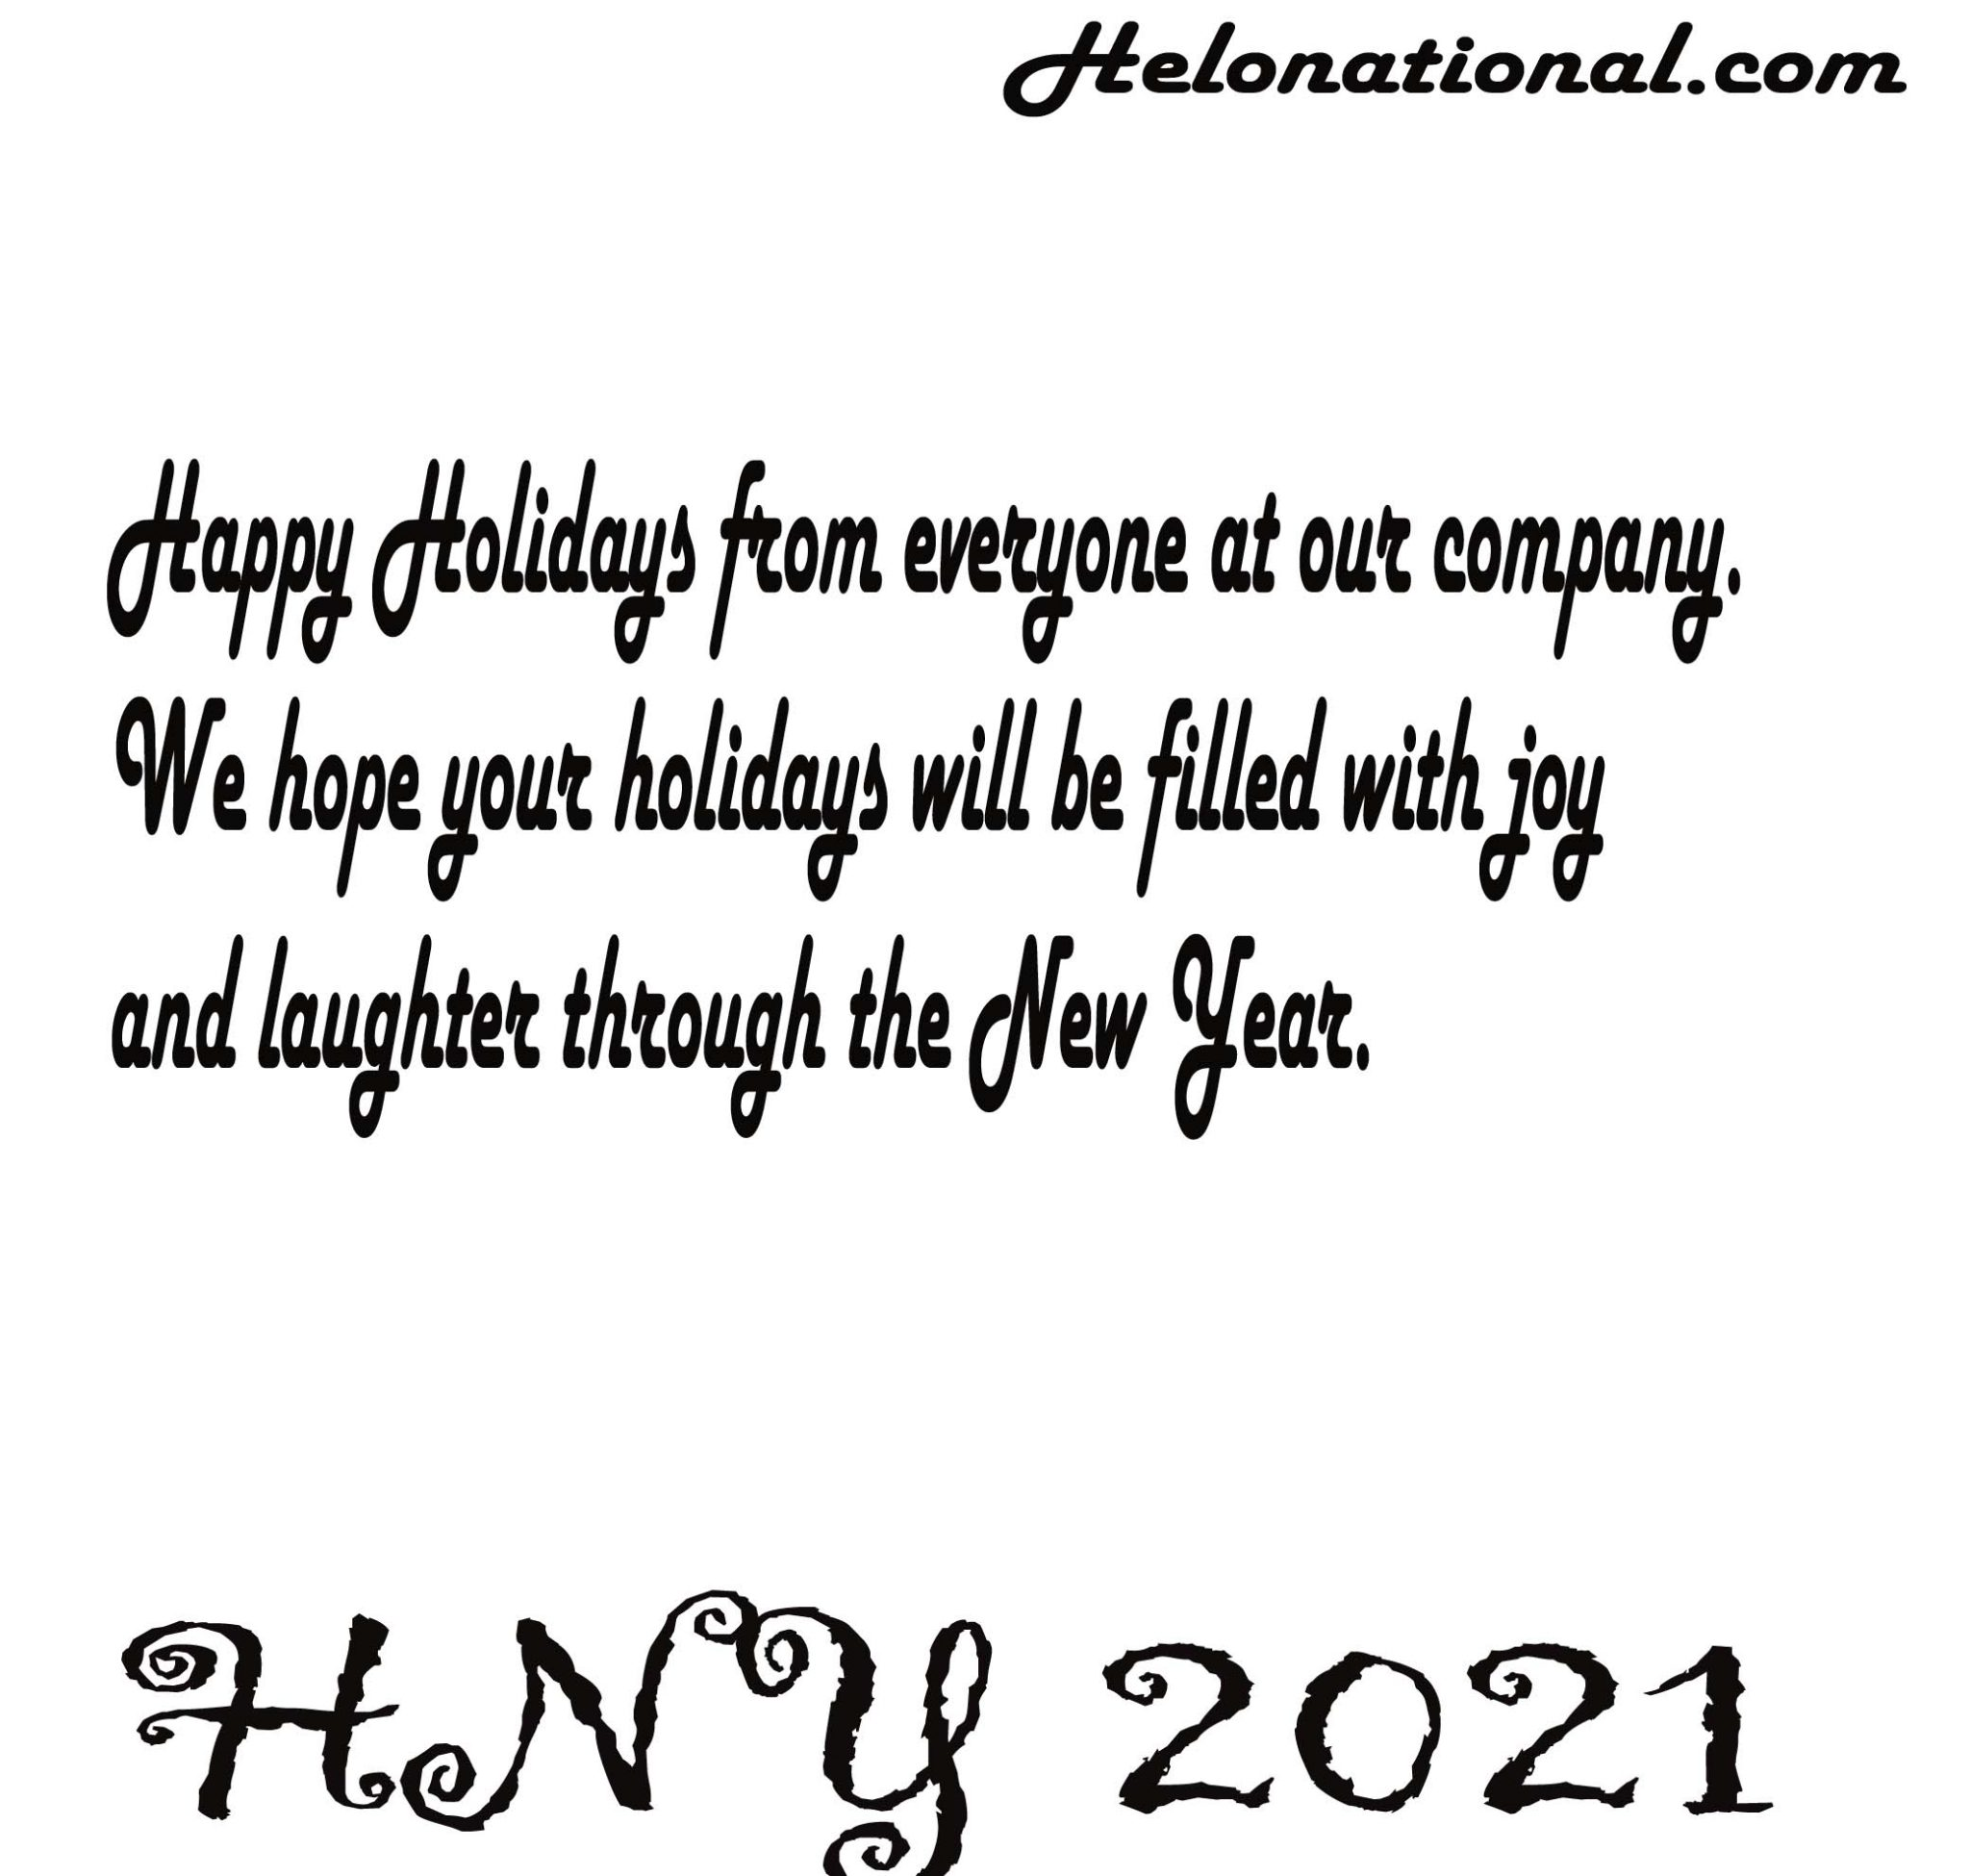 HNY 2021 quotes for business